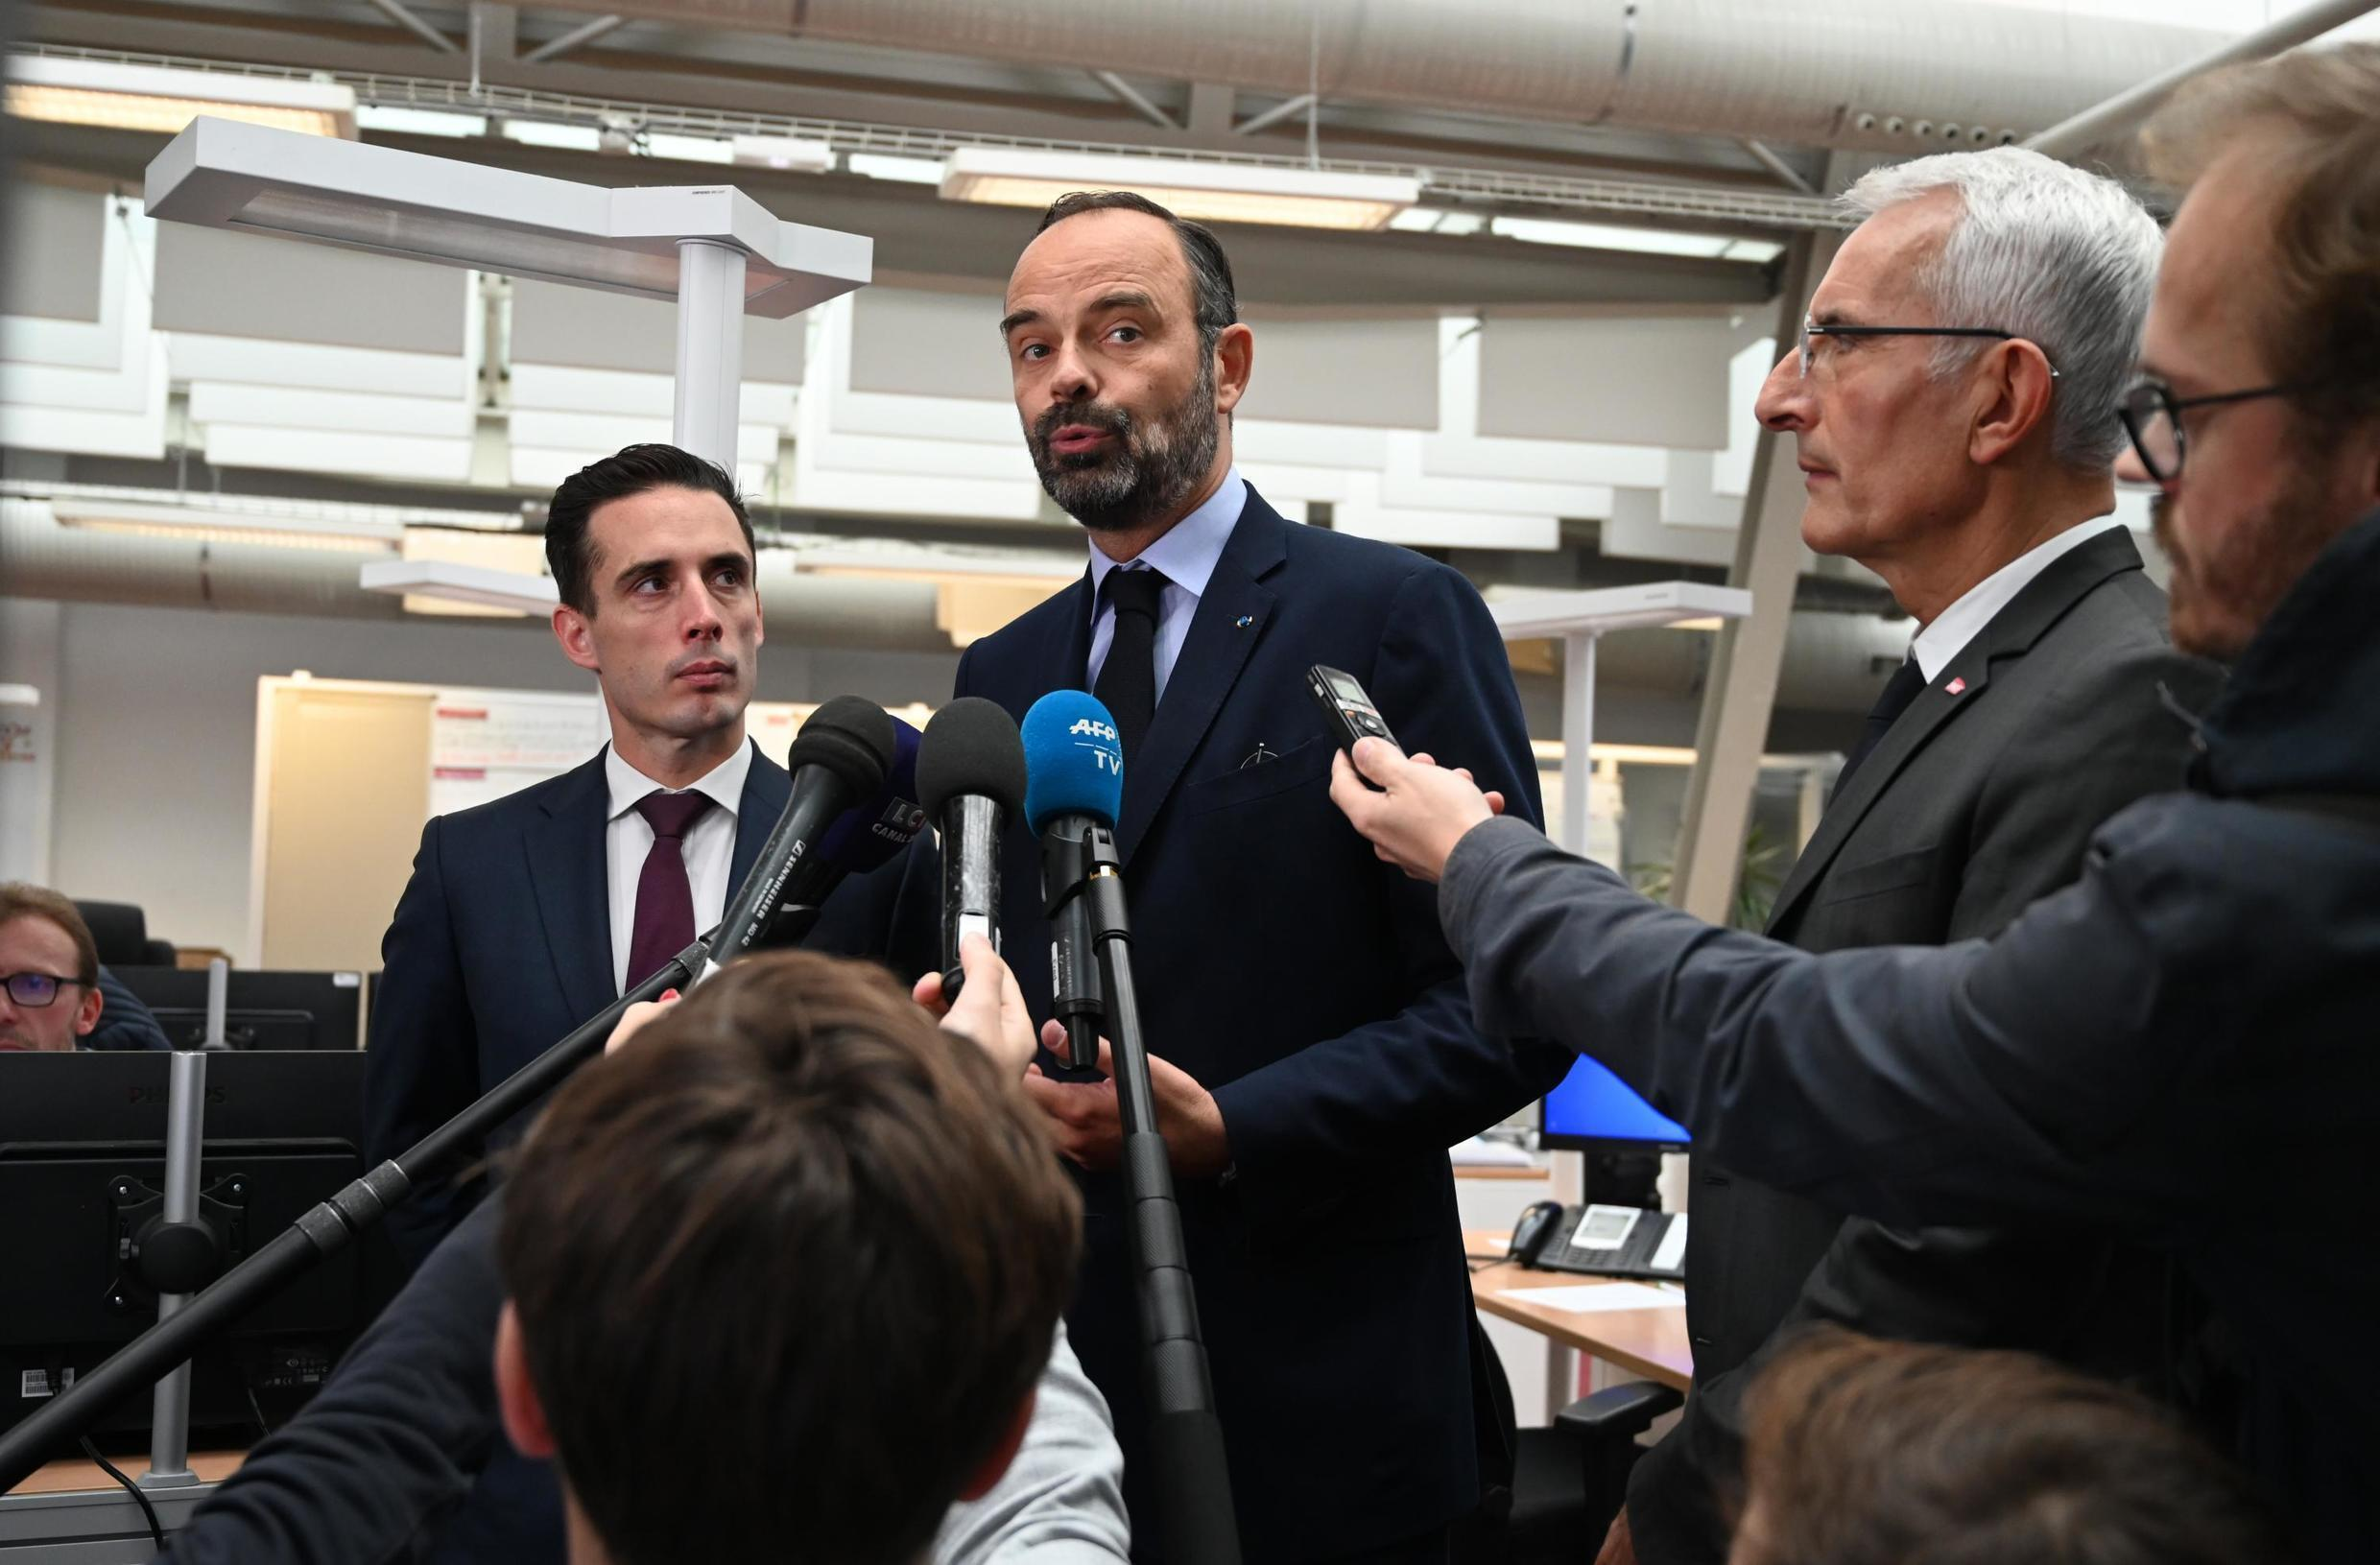 French Prime Minister Edouard Philippe (C), flanked by French Junior Minister for Transports Jean-Baptiste Djebbari (L) and CEO of France's state-owned railway company SNCF Guillaume Pepy (R) speaks at Gare de l'Est Paris' station, October 19, 2019